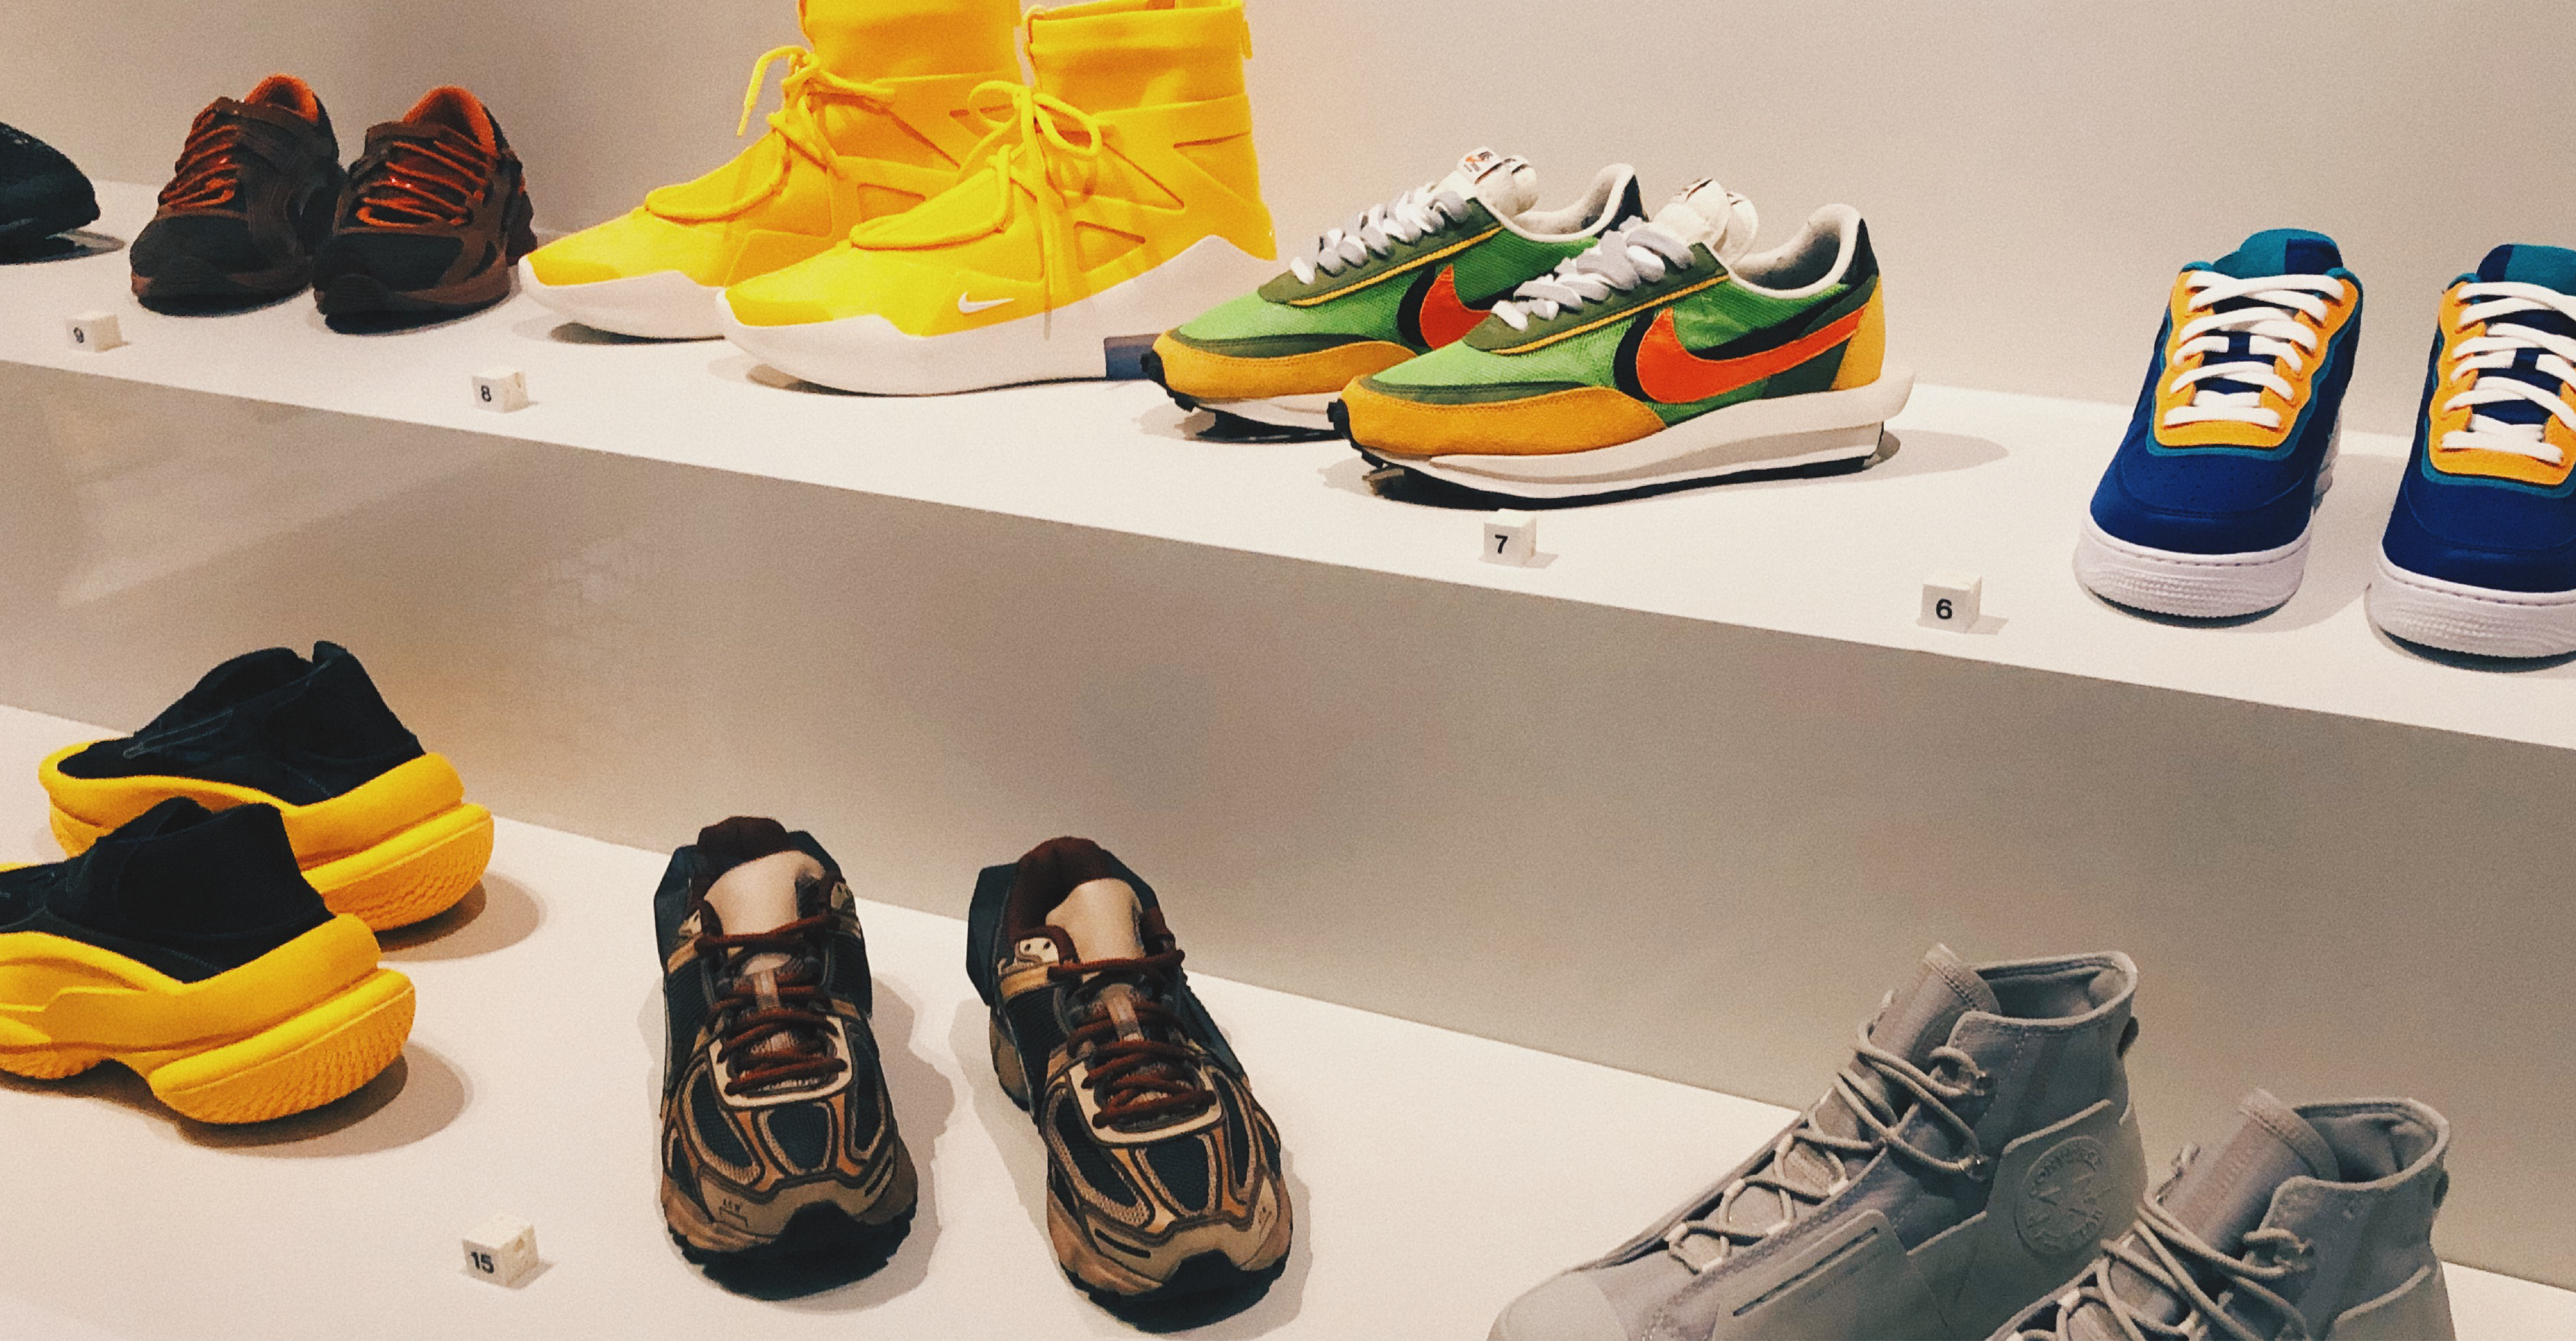 A collection of special edition, colourful sneakers in a cabinet space.